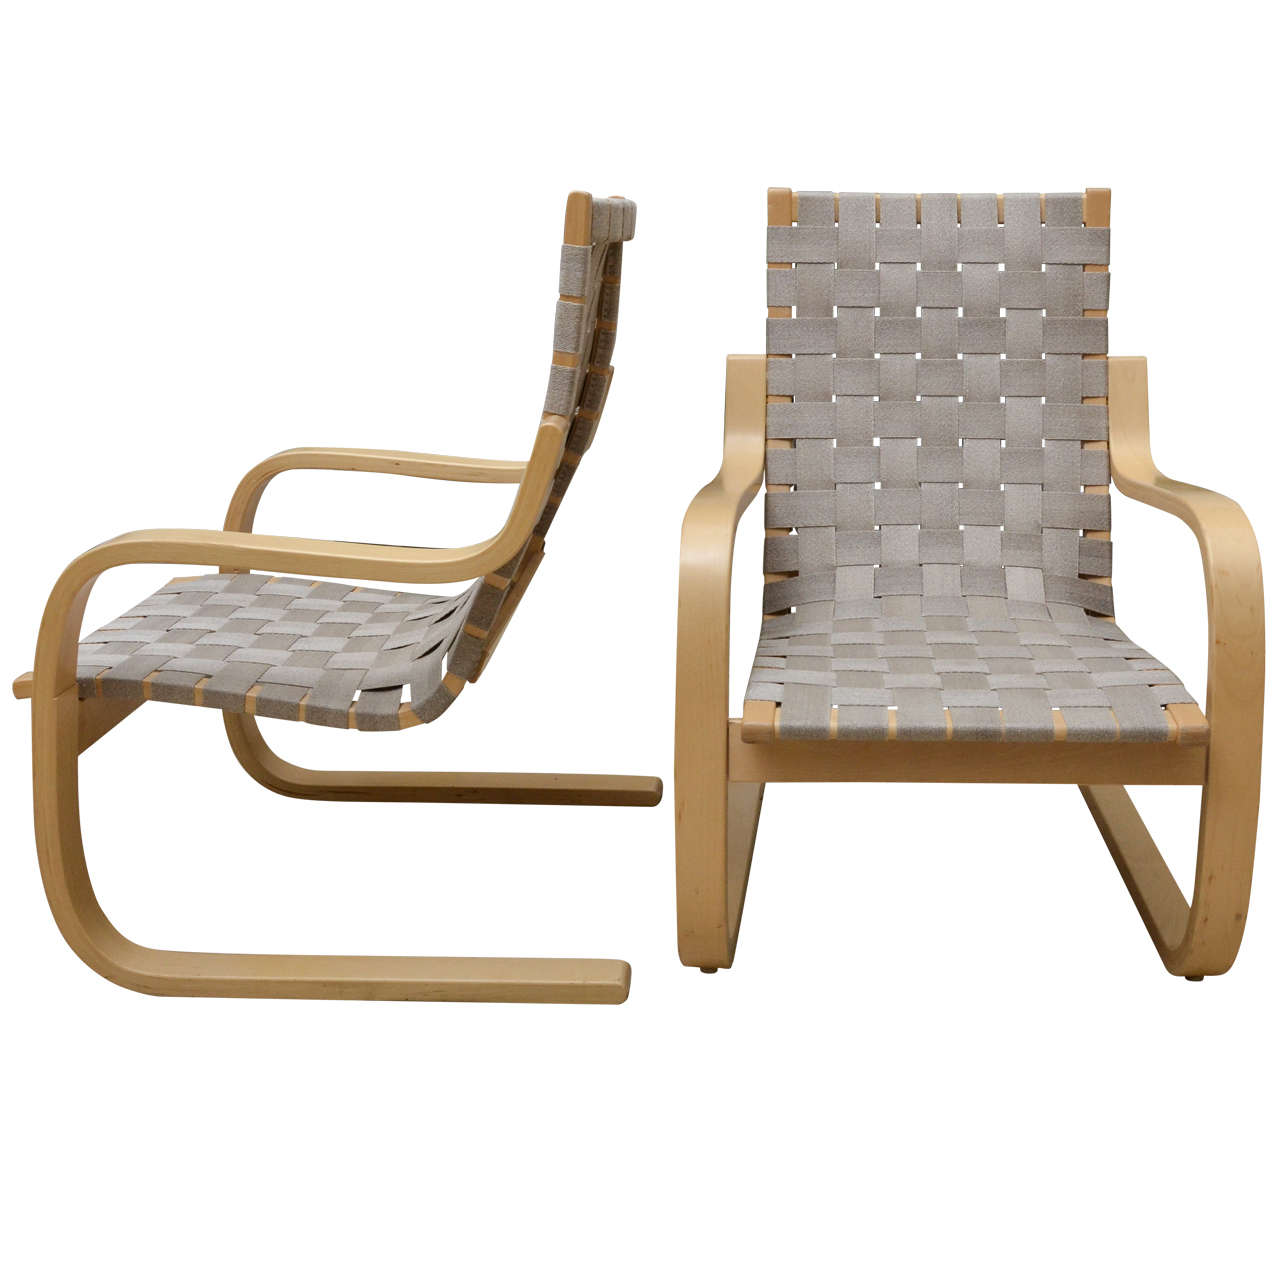 This pair of alvar aalto birch lounge chairs is no longer available